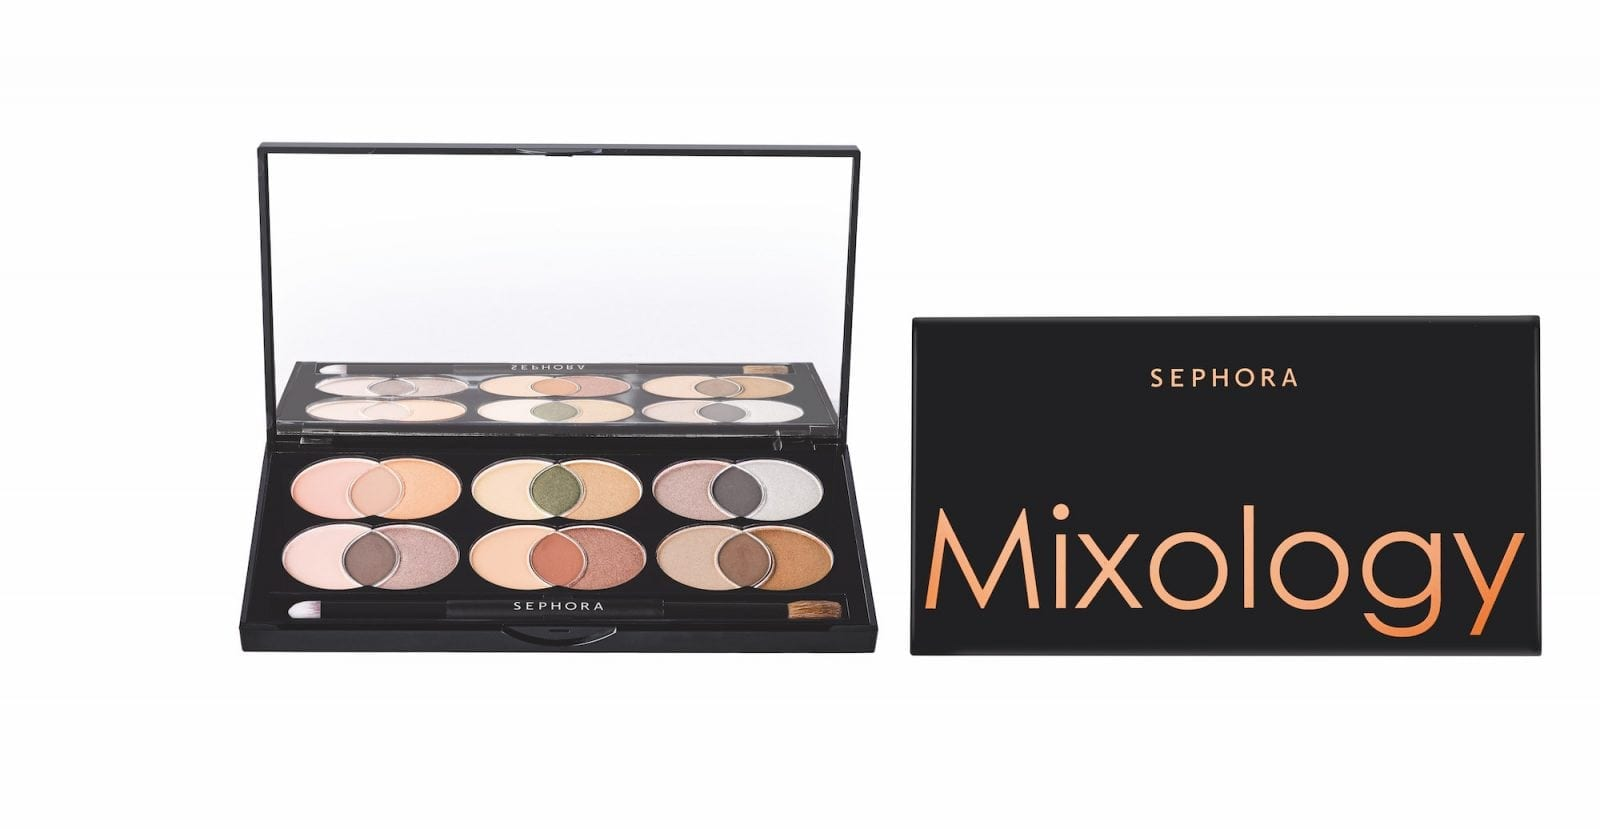 Mixology Palette Sweet Warm by Sephora - Summer Trends de la Sephora